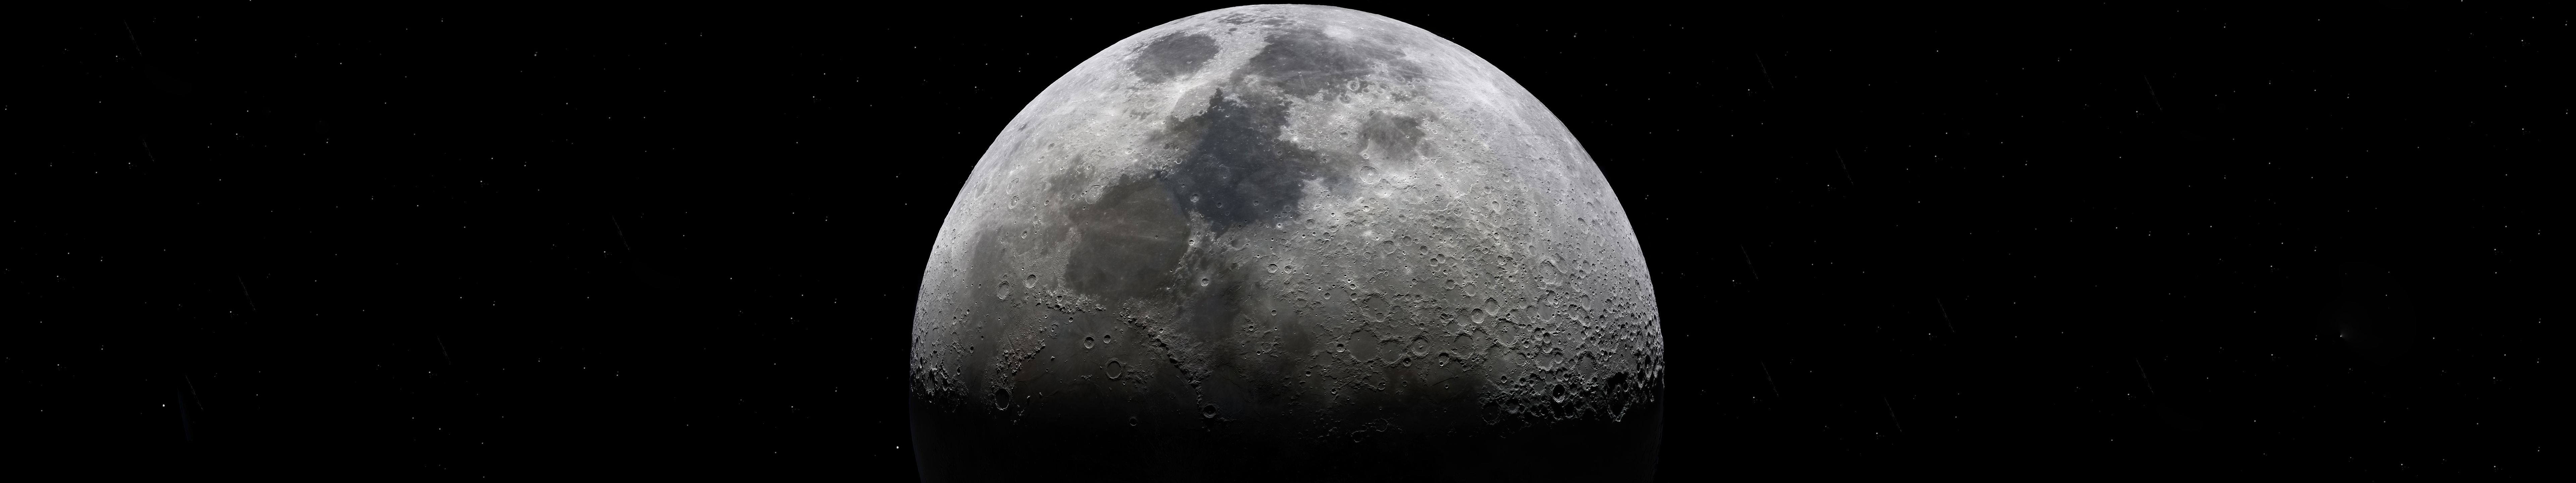 Moon 400mp 7680 X 1440 R Wallpaper Painting Memes Funny Images